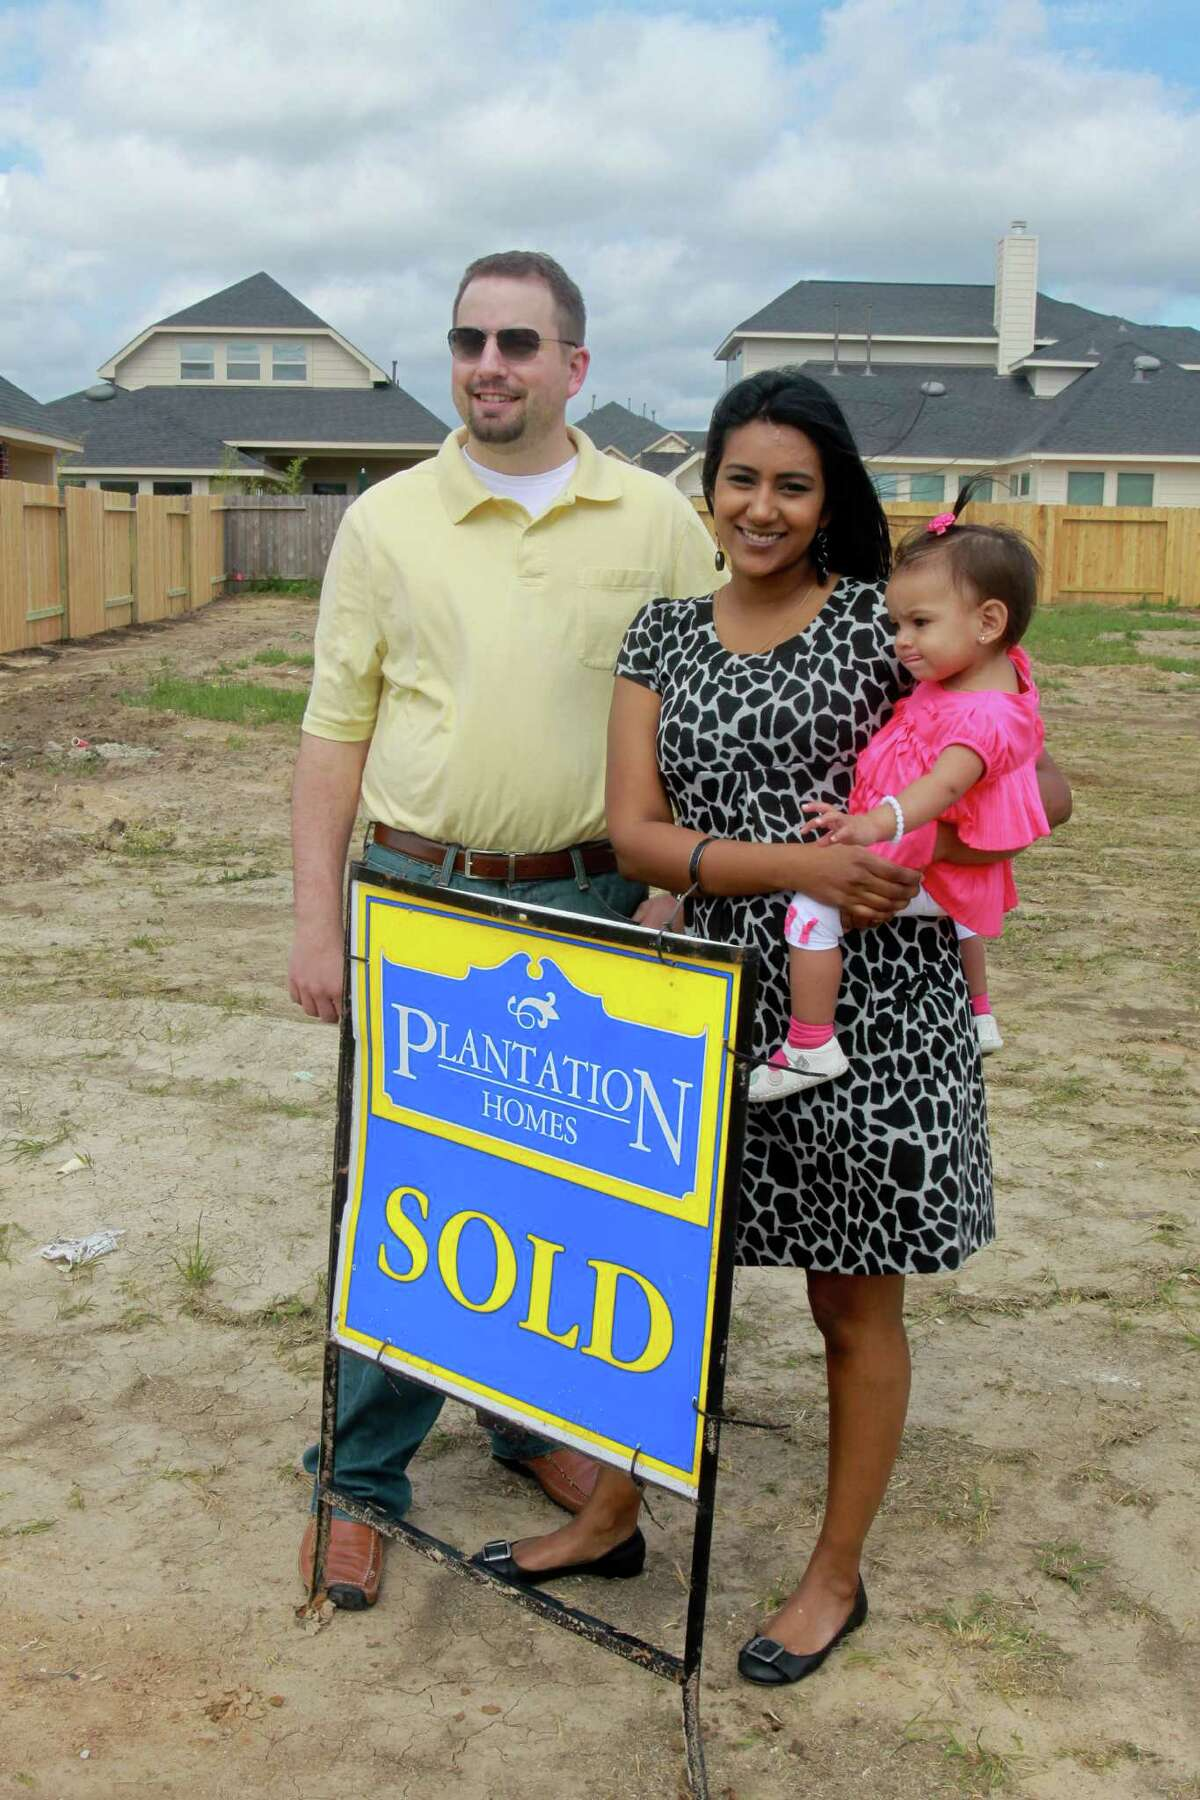 (For the Chronicle/Gary Fountain, April 5, 2013) David and Saritha Bowles, with their daughter Sita, eleven-months-old, at the location of their new home. Construction doesn't start for a few weeks. They spent nearly three months looking at about thirty homes before deciding on a new build in Rosenberg.